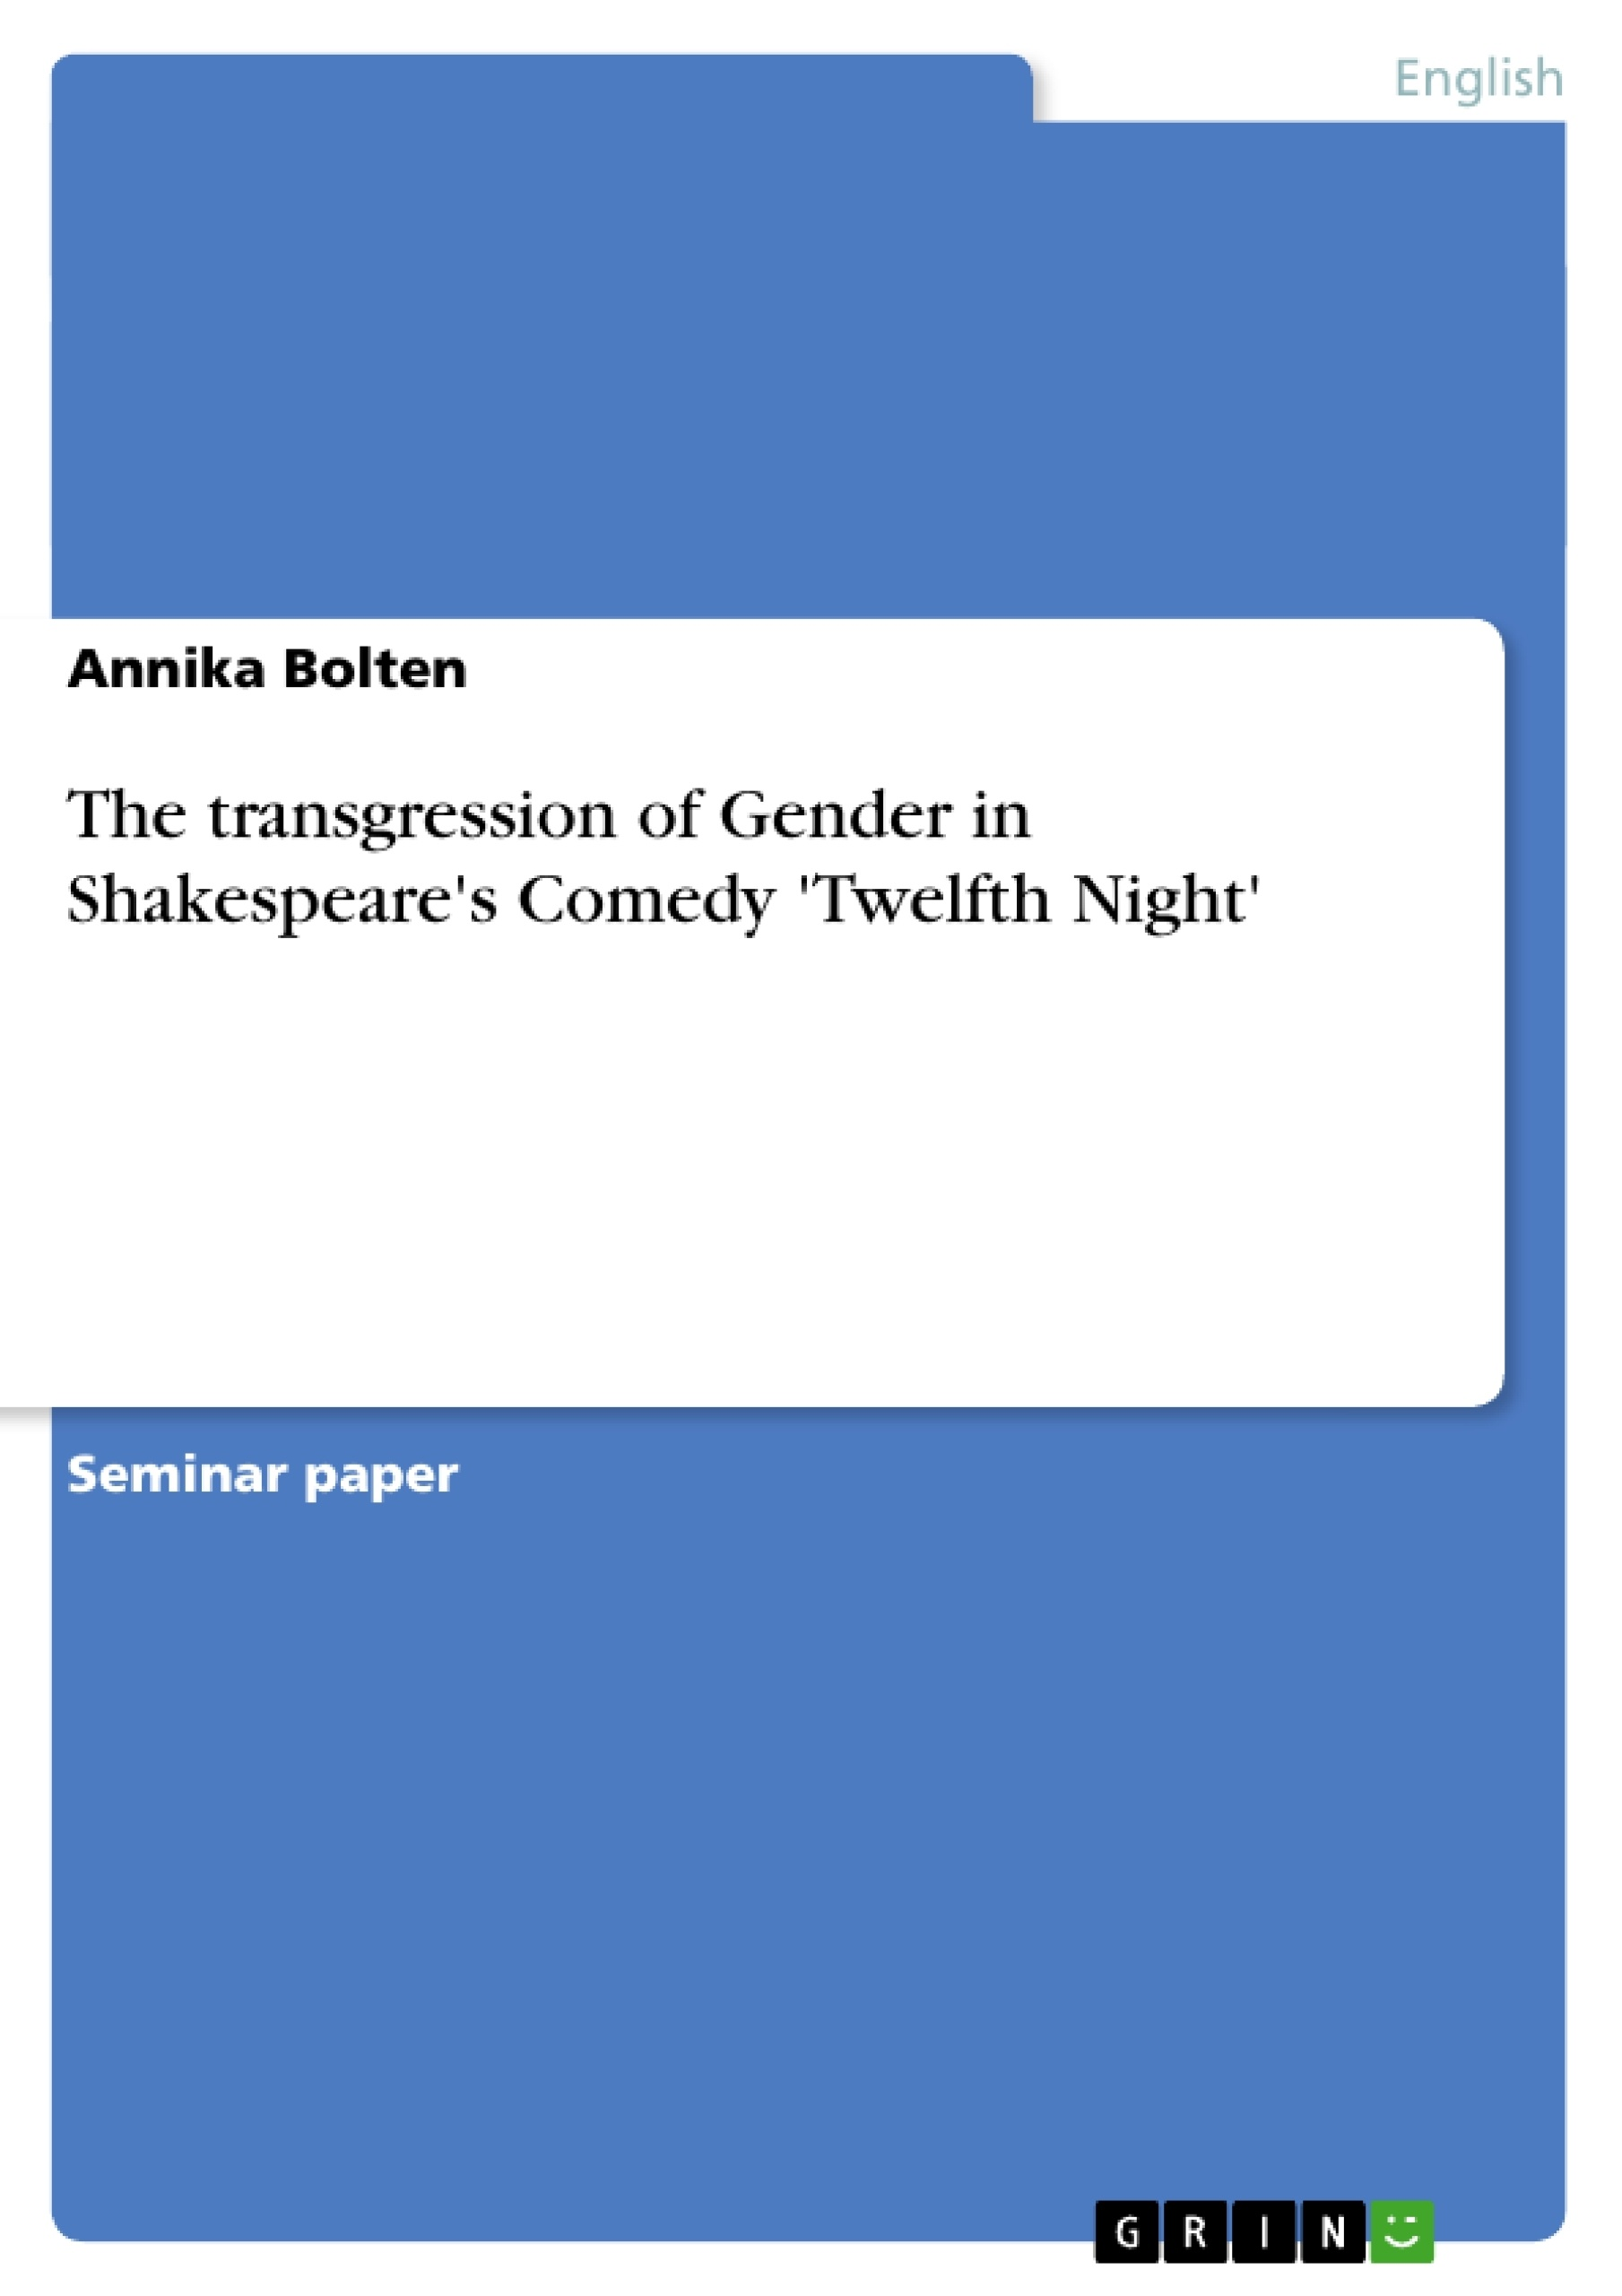 gender and sexuality in twelfth night and the merchant of venice essay Shakespeare's merchant of venice and twelfth night essay by the research group.